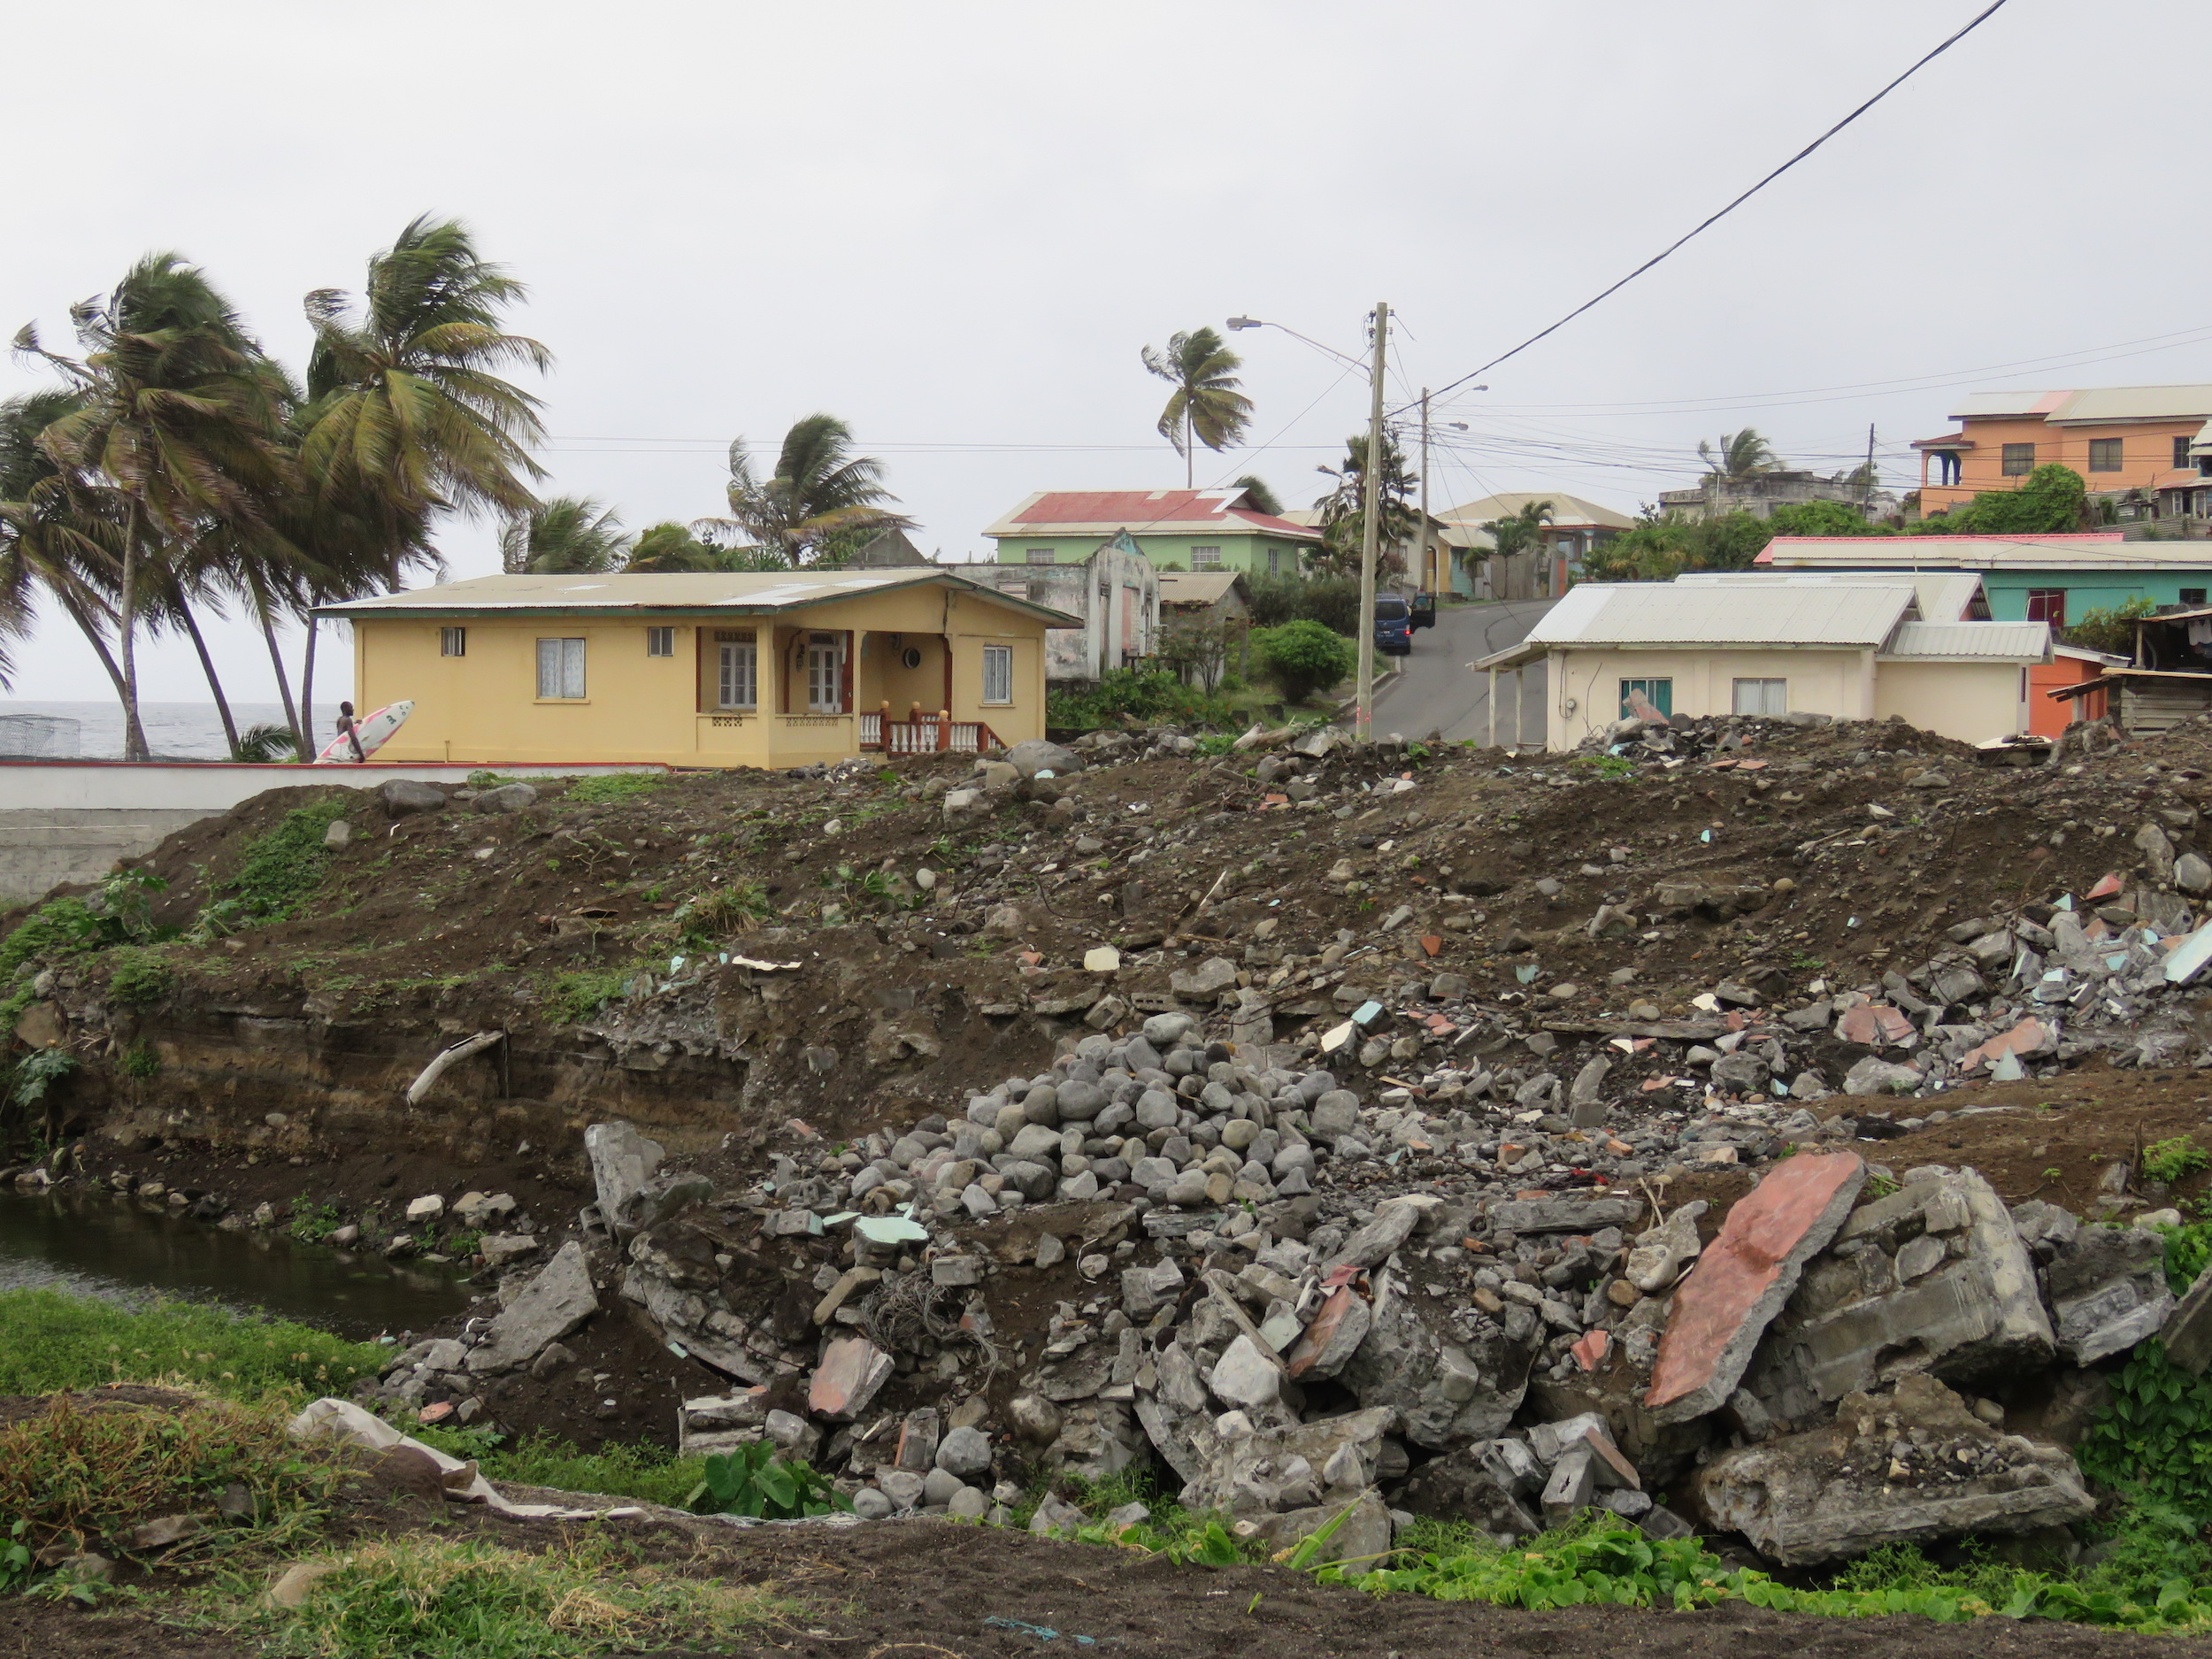 Rubble marks the spot where a house collapsed into the riverbank during the 2013 floods in Natalia's neighborhood of Georgetown.